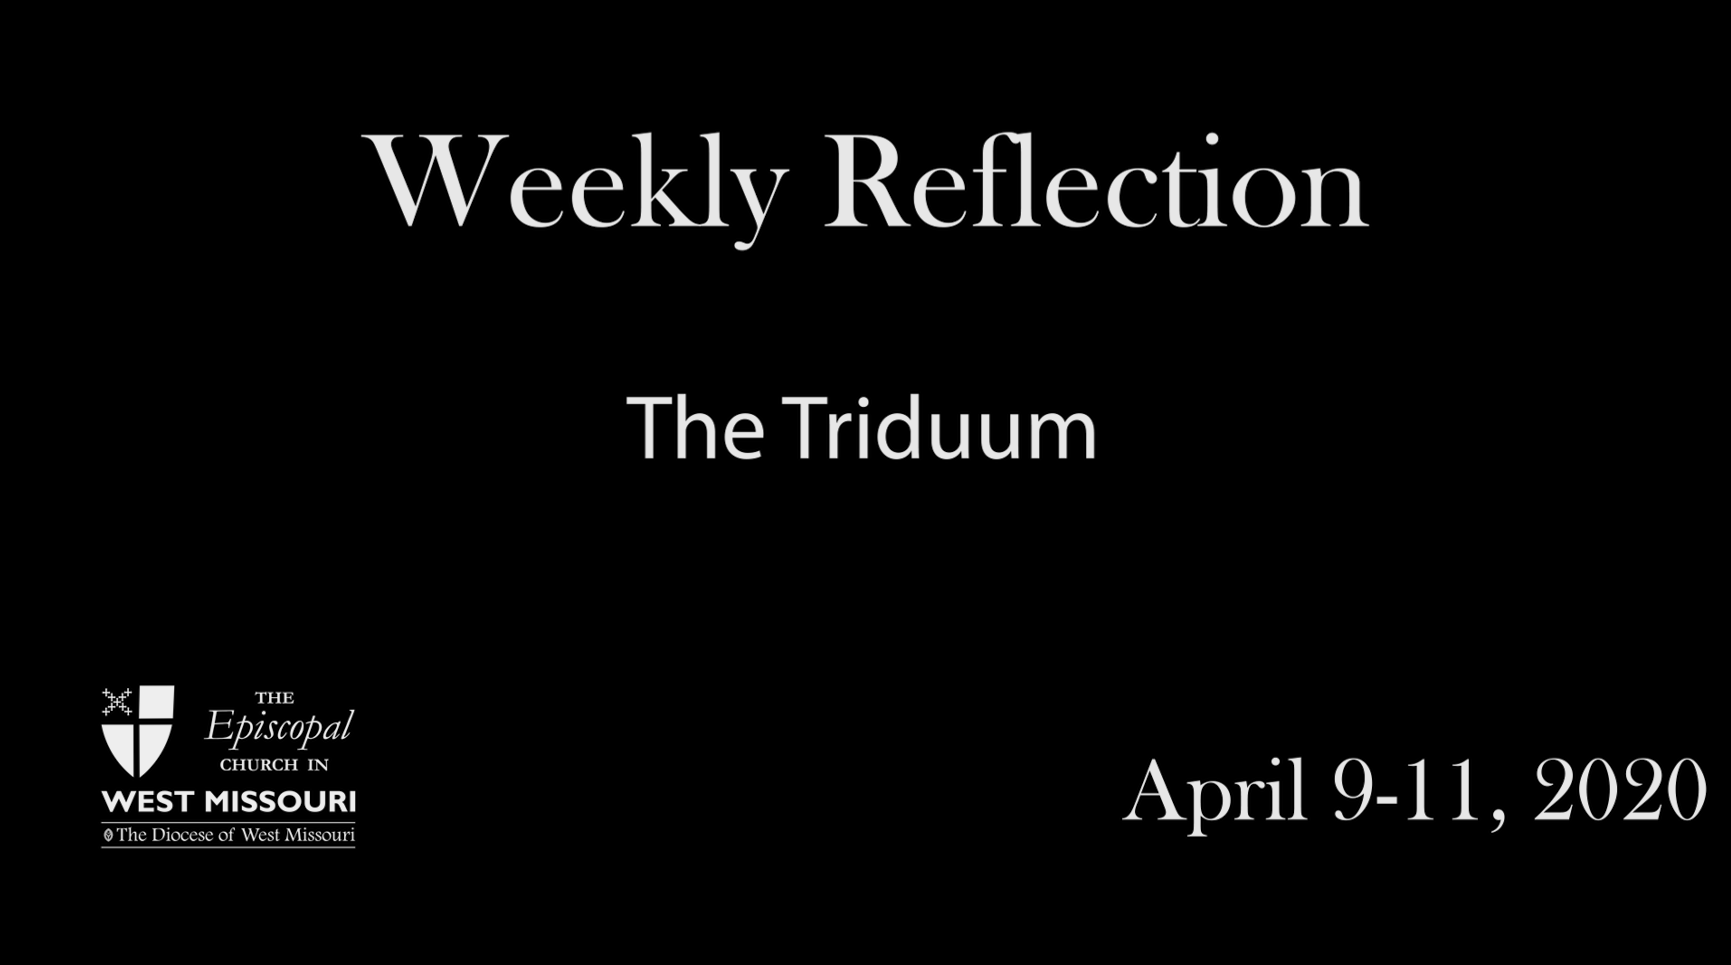 Weekly Reflection – The Triduum